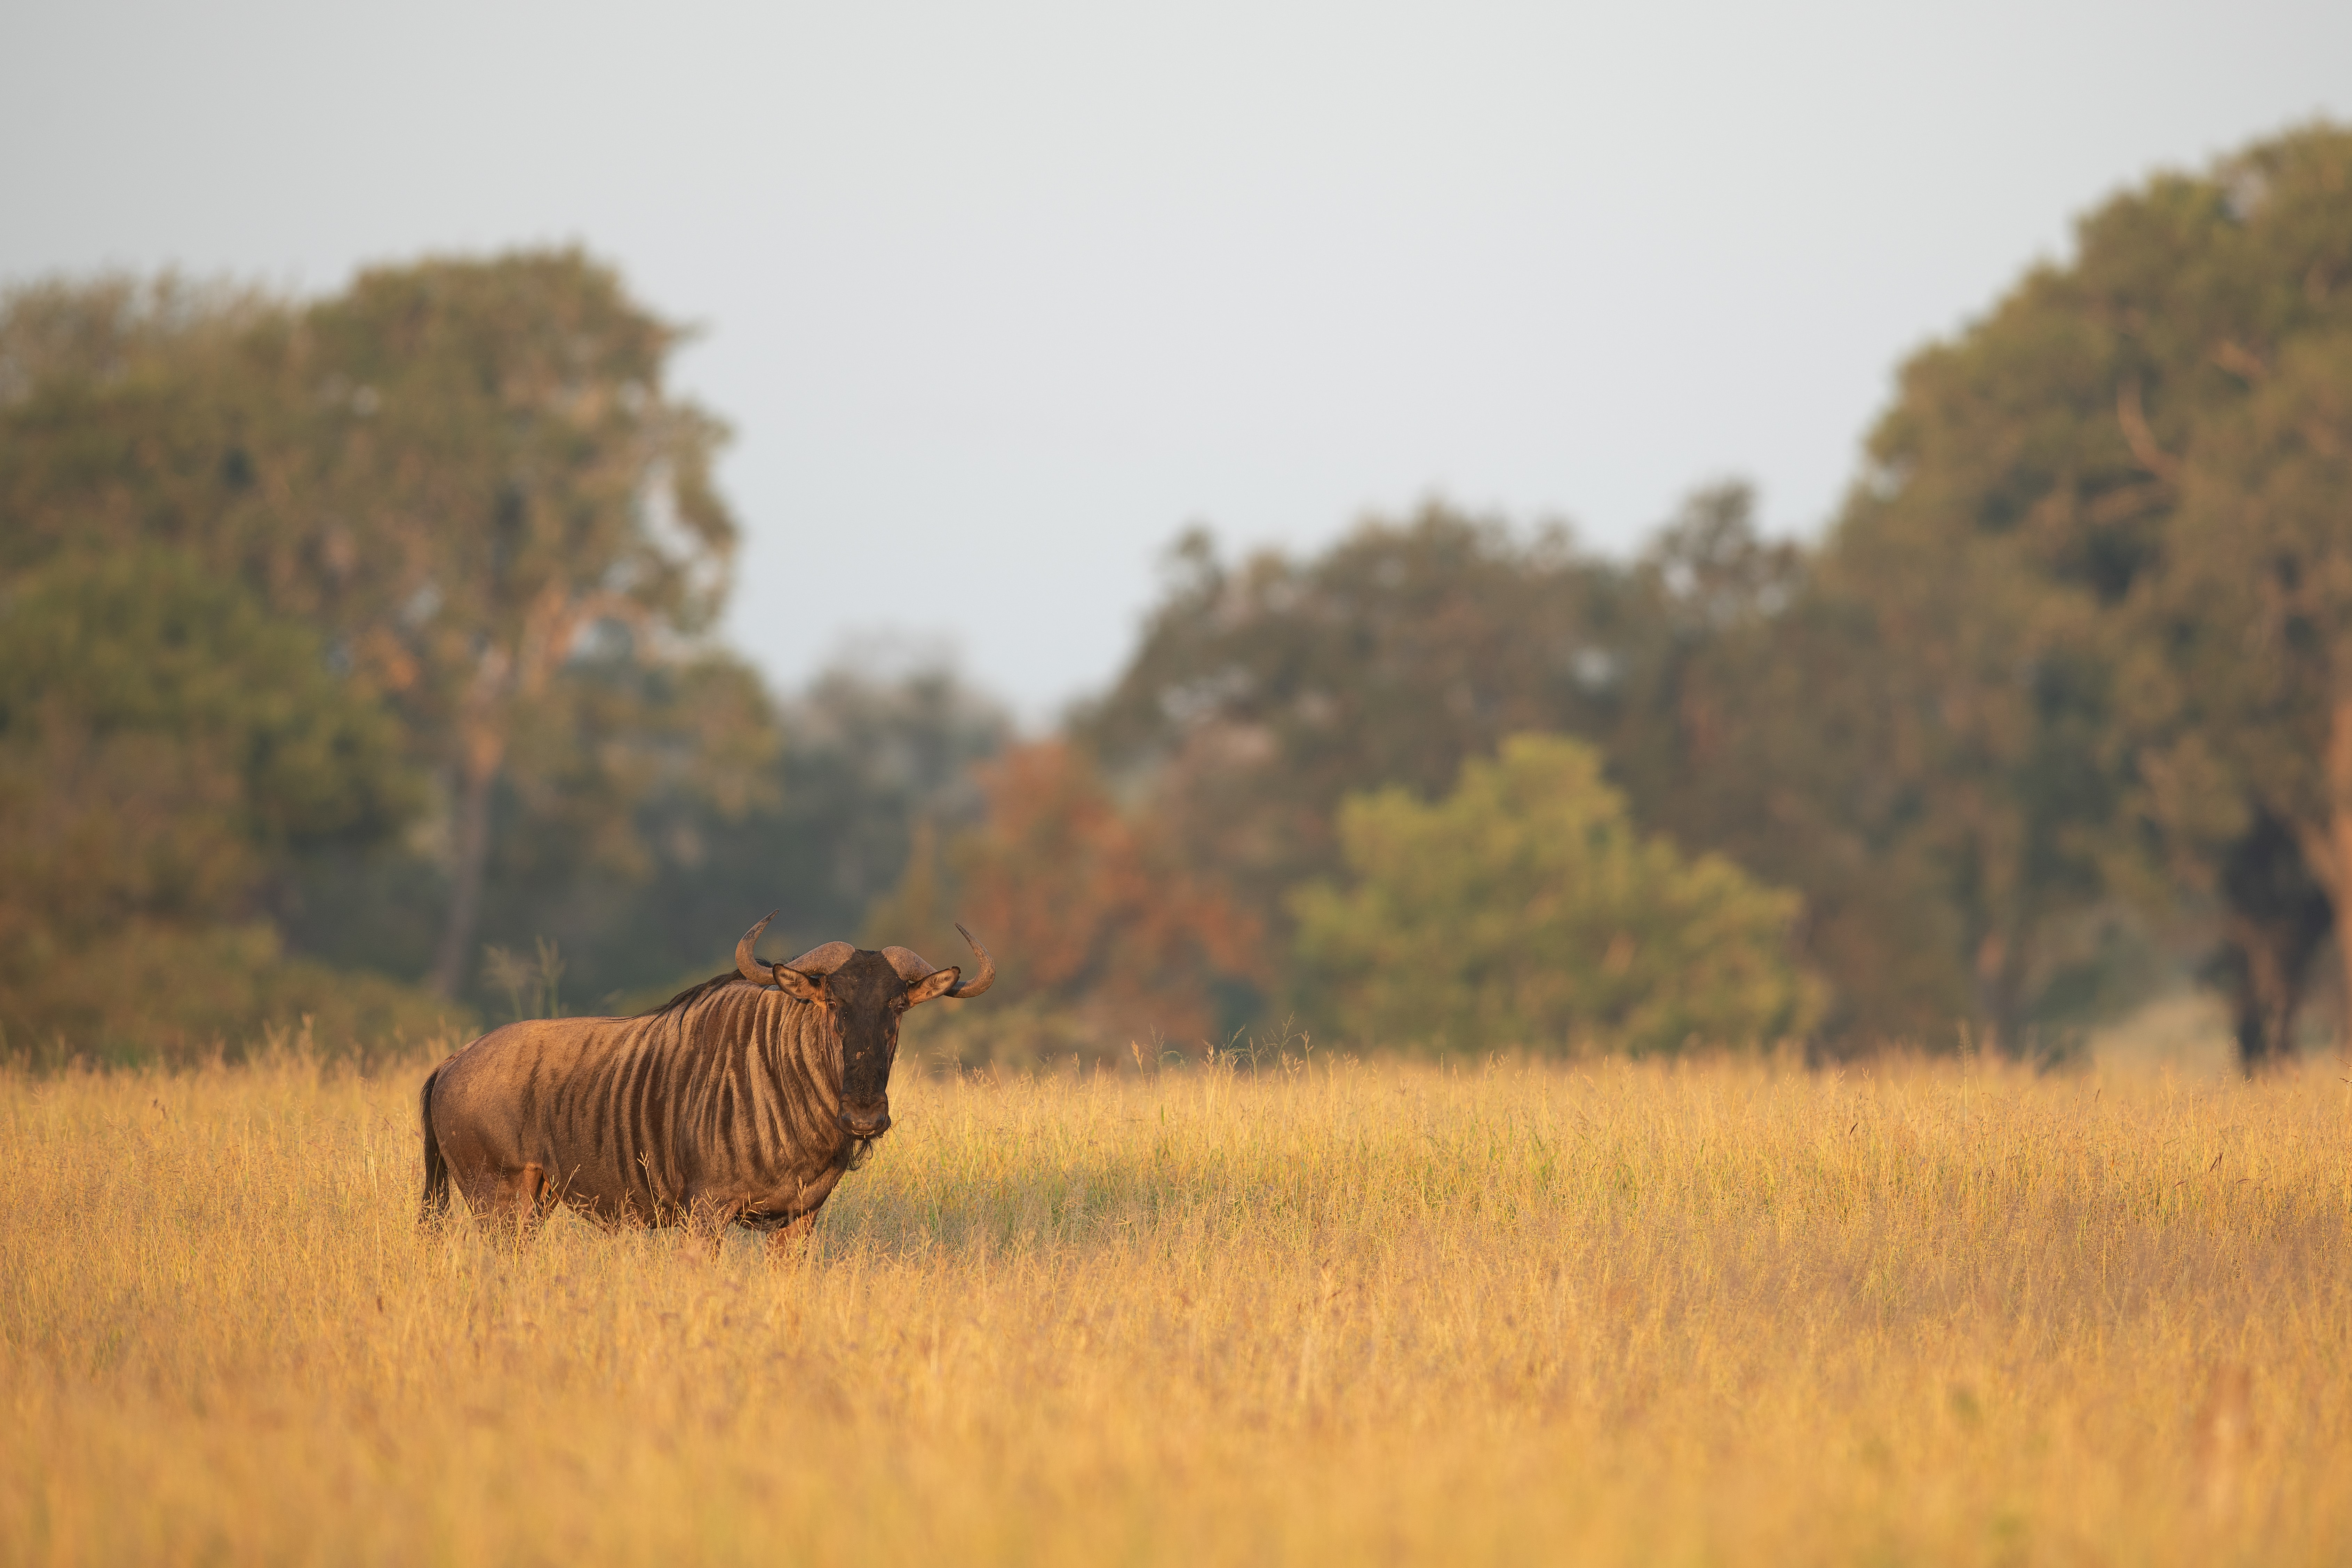 selective focus photography of animal on open field